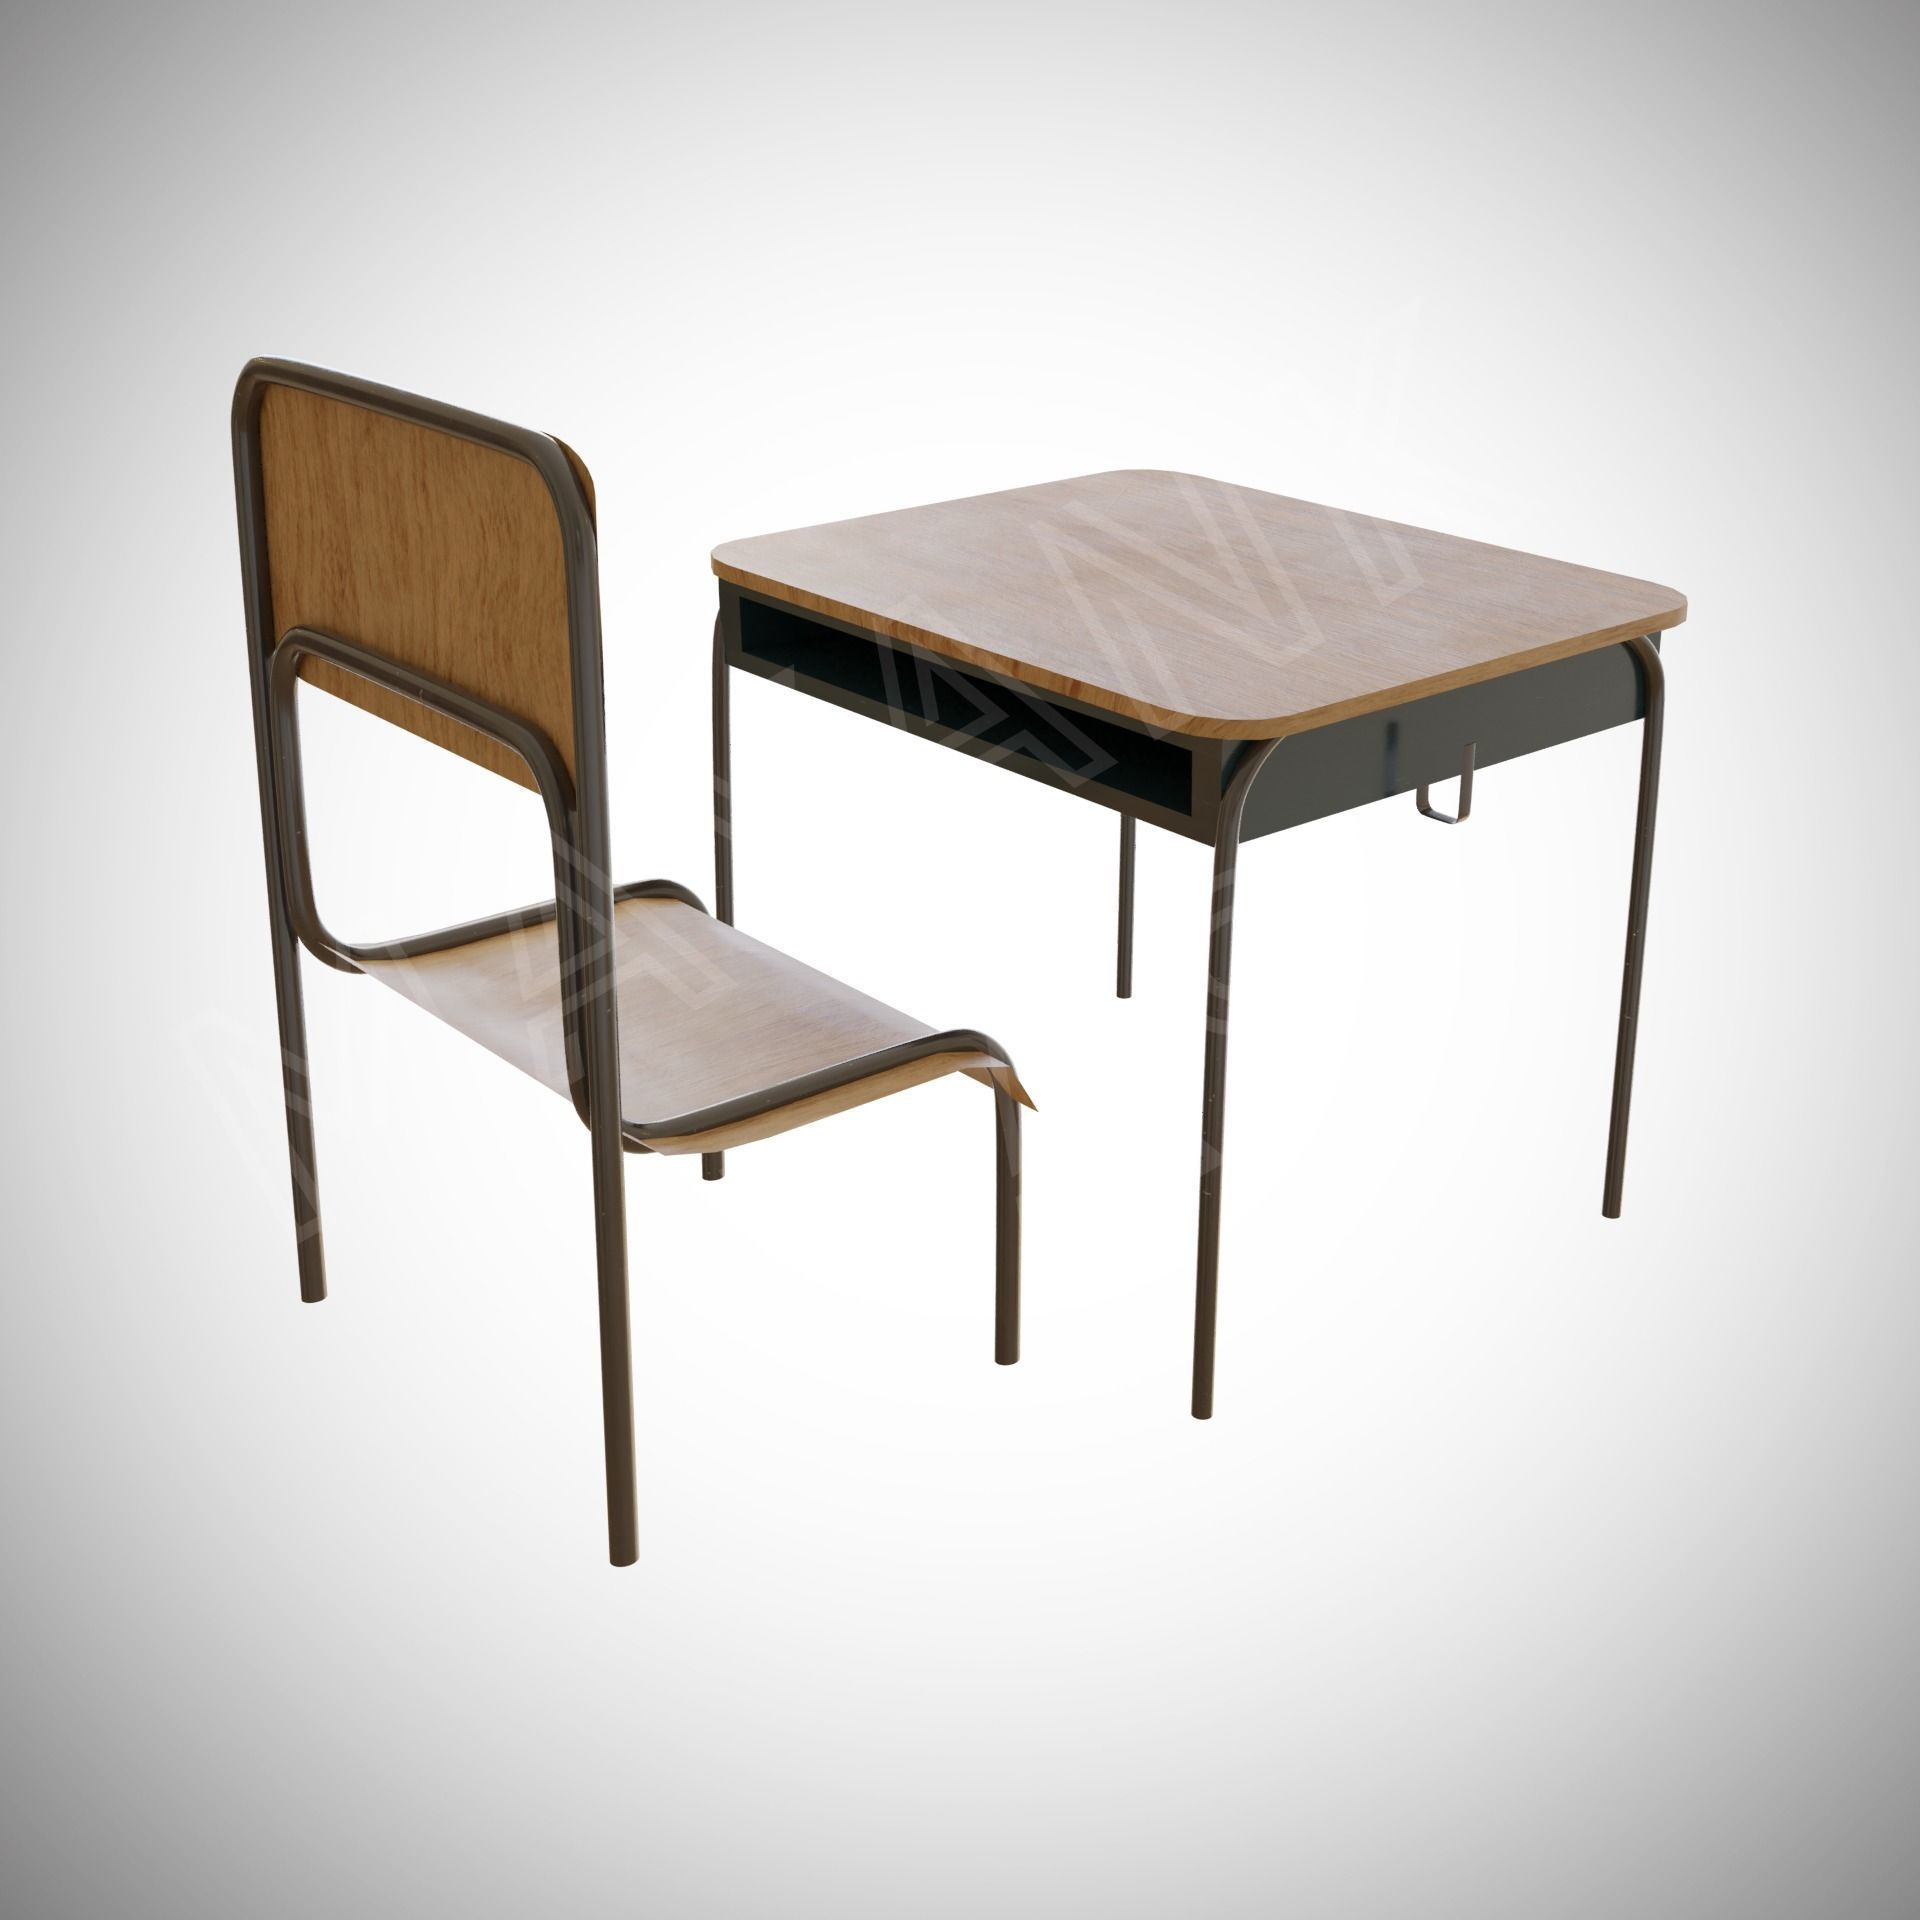 Japanese School Chair And Desk